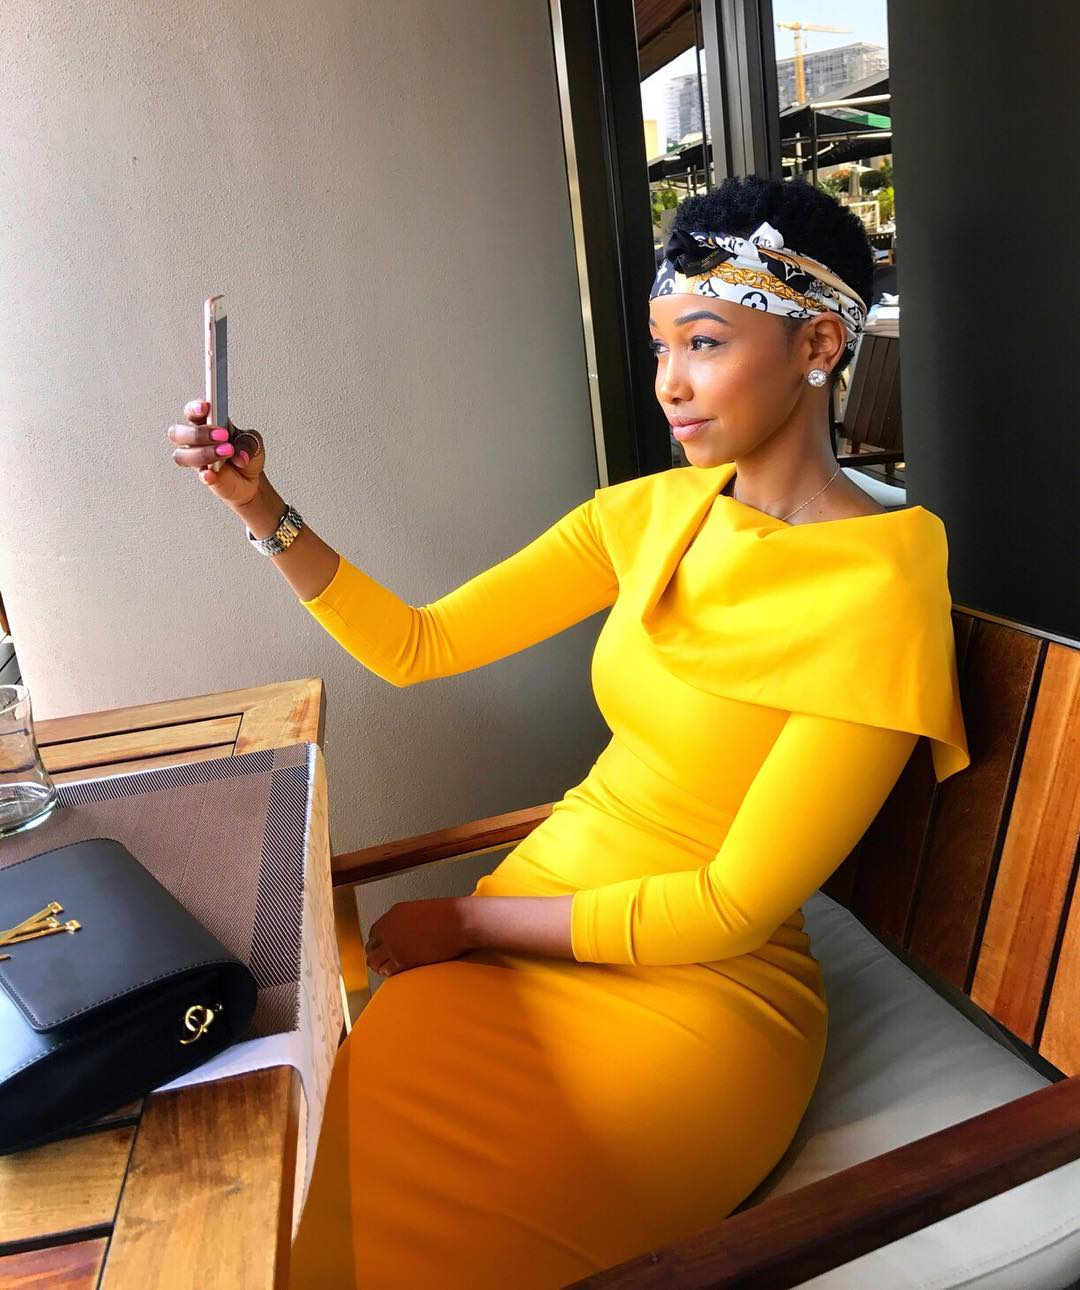 Huddah Monroe taking a selfie looking nice in her yellow off shoulder dress. Photo credit: Instagram/huddahthebosschick